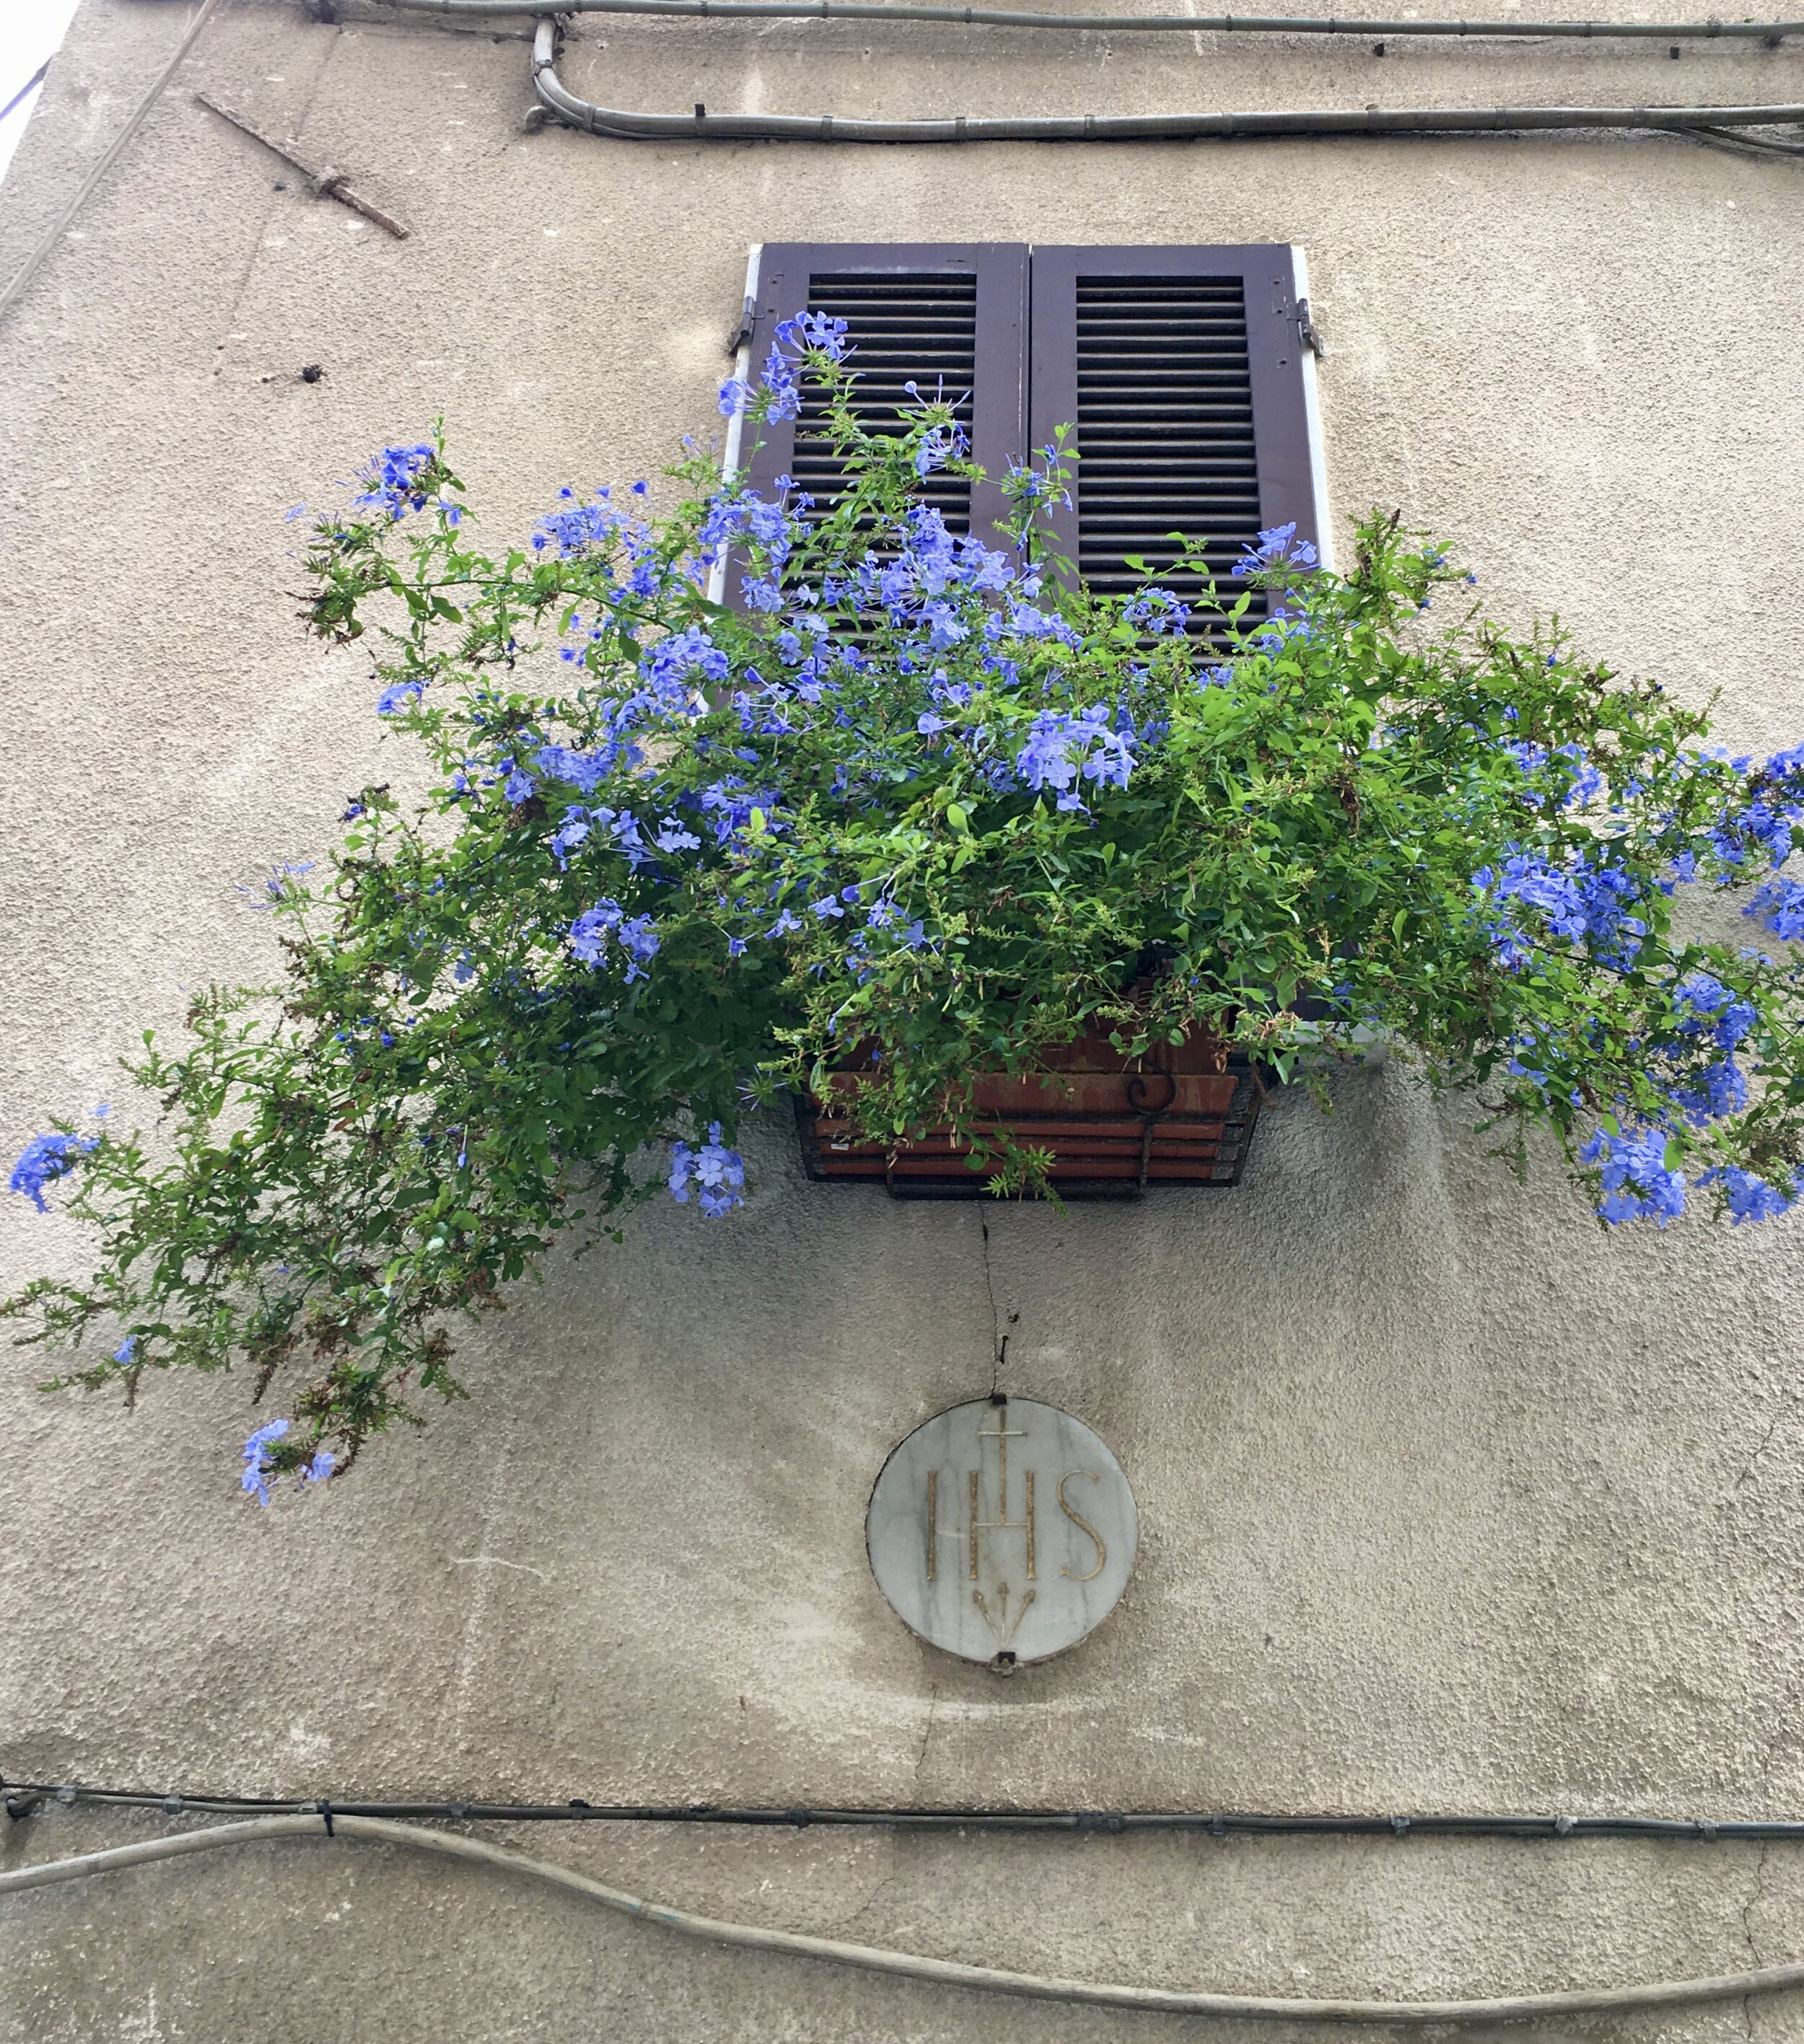 Flowers adorn many of the town's windows.